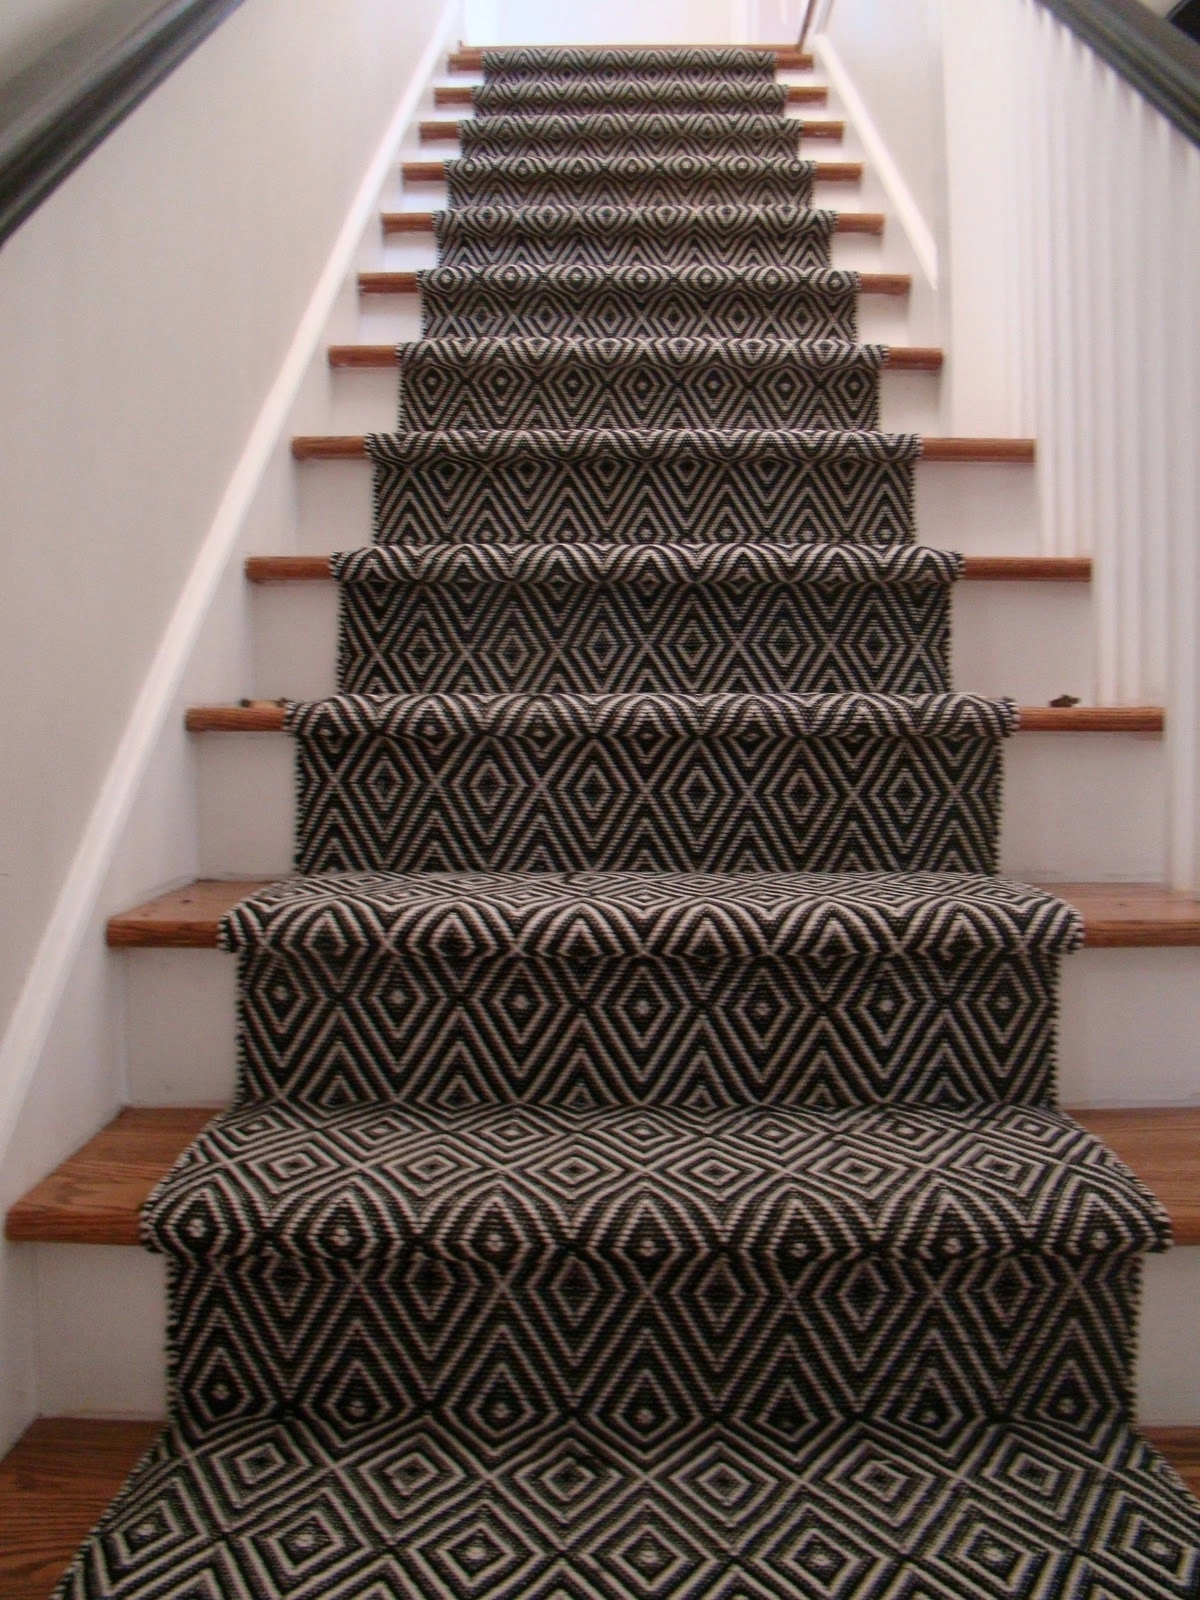 Carpet Treads For Wood Stairs Ideas On Foter | Carpet For Wooden Stairs | Search And Rescue | Bedroom | Carpeted Stair Railing Wooden Floor | Transition | Beautiful